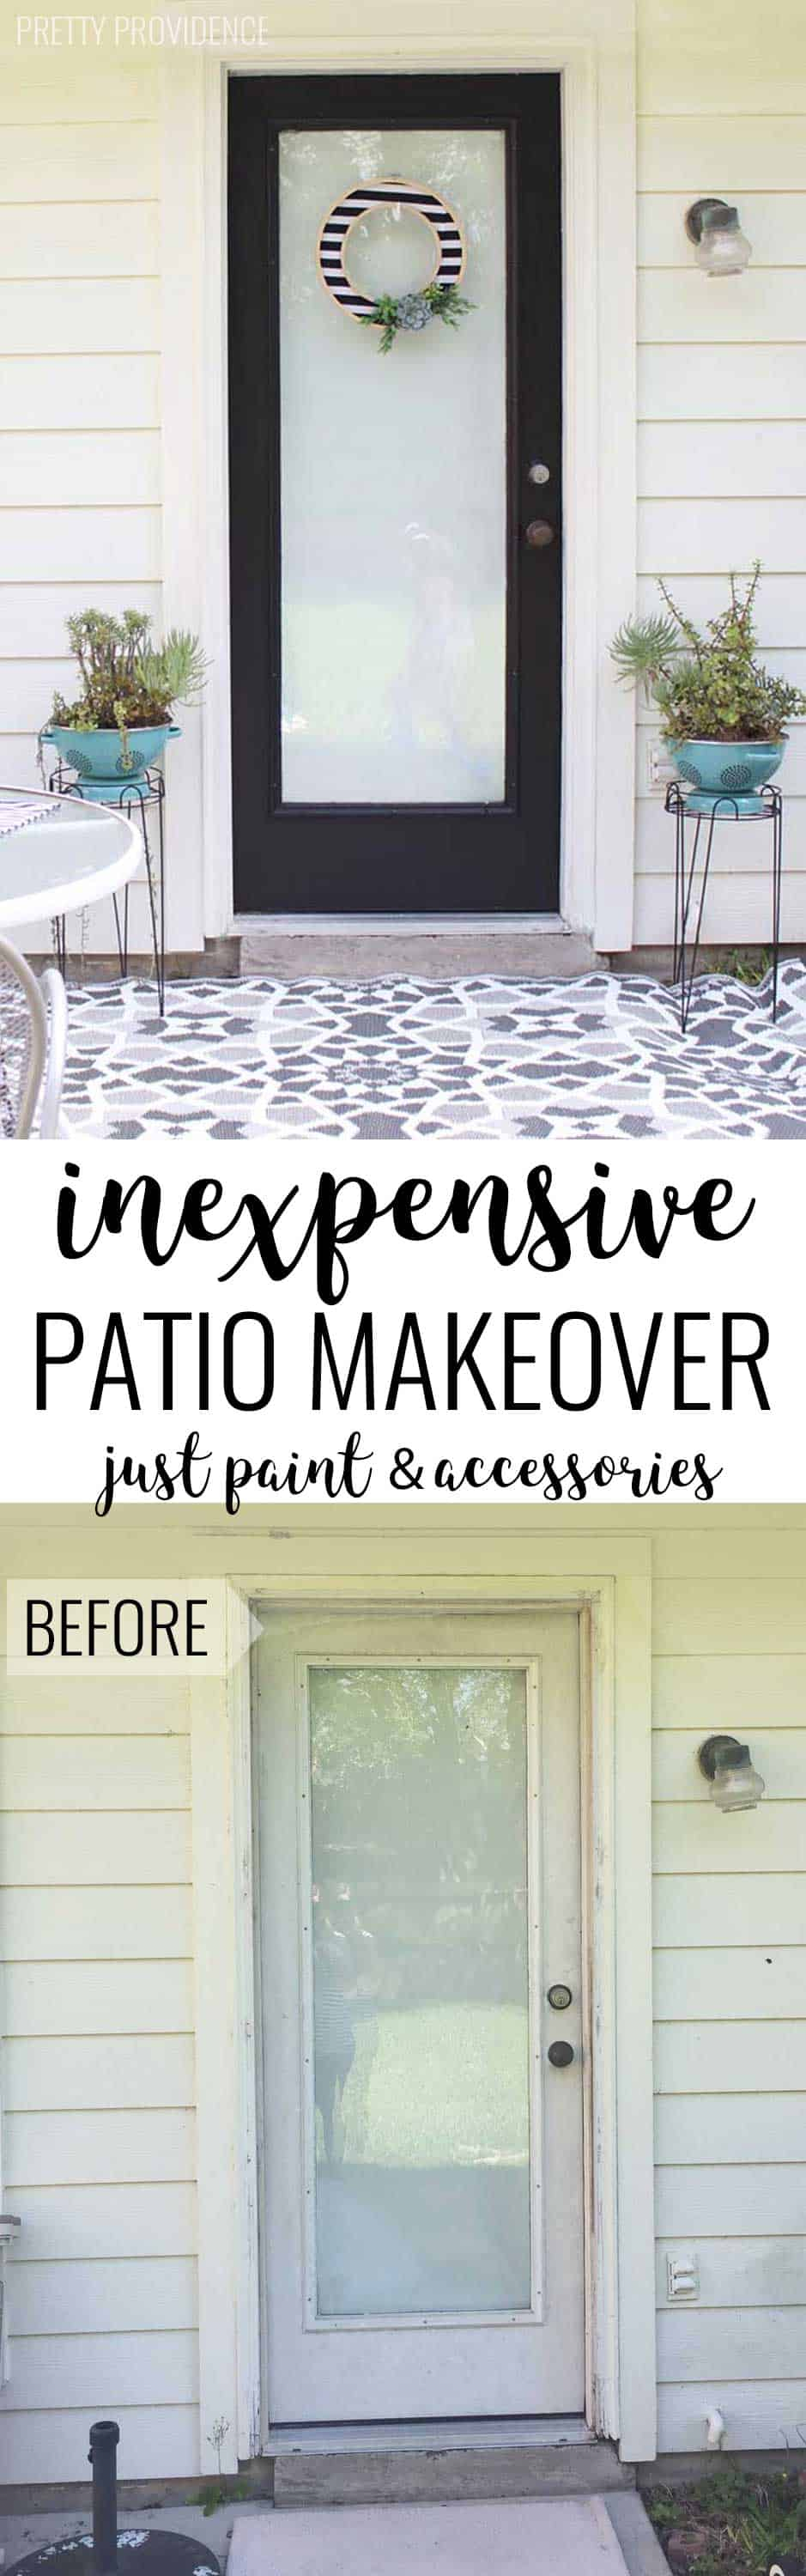 The power of PAINT! This door and patio area looks incredible and the transformation barely cost anything!